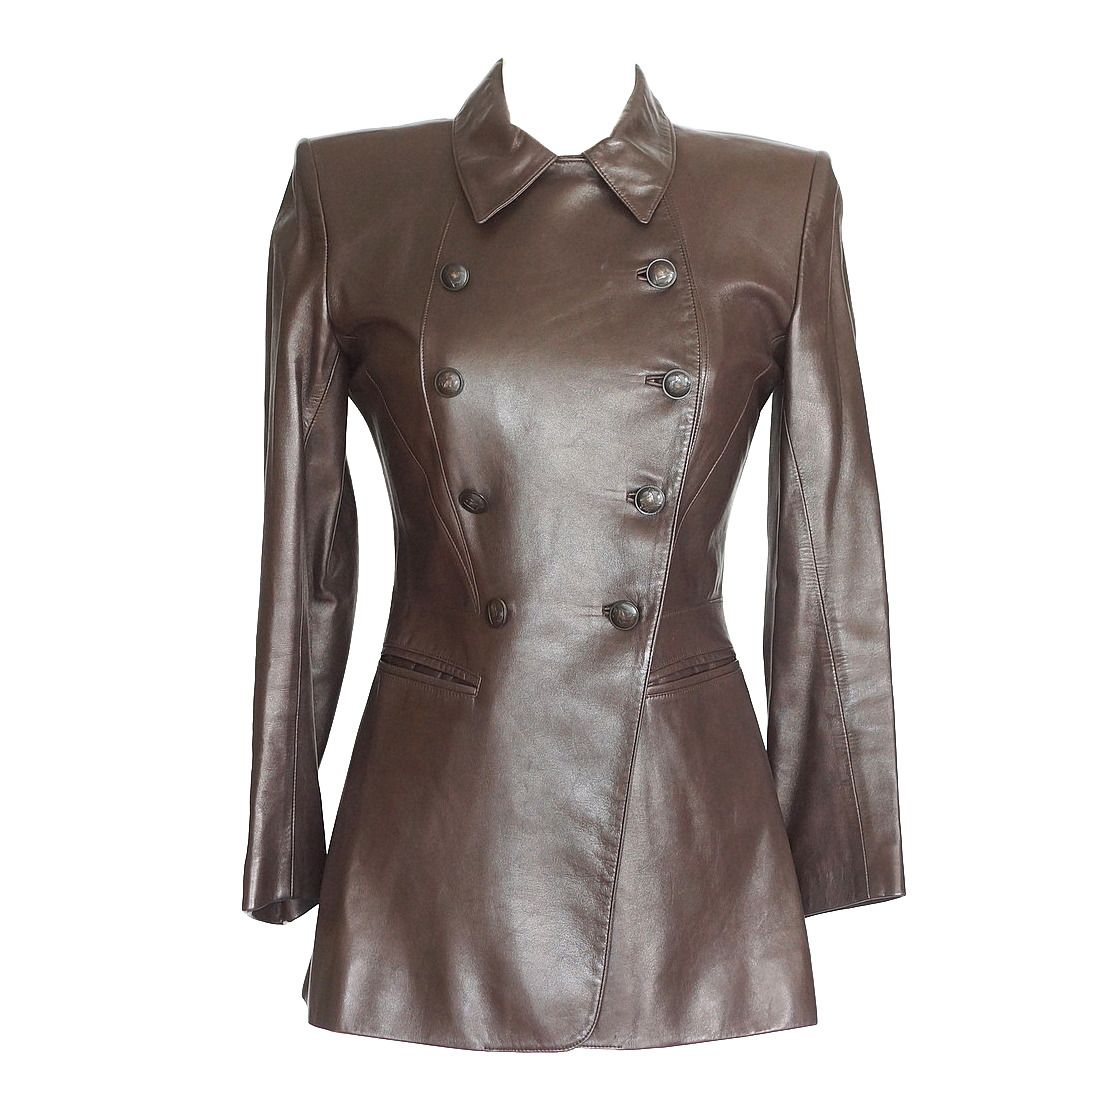 HERMES vintage lambskin leather brown jacket SUPERB details 36 4 to 6 | From a collection of dealer mightychic rare vintage jackets at https://www.1stdibs.com/fashion/clothing/jackets/